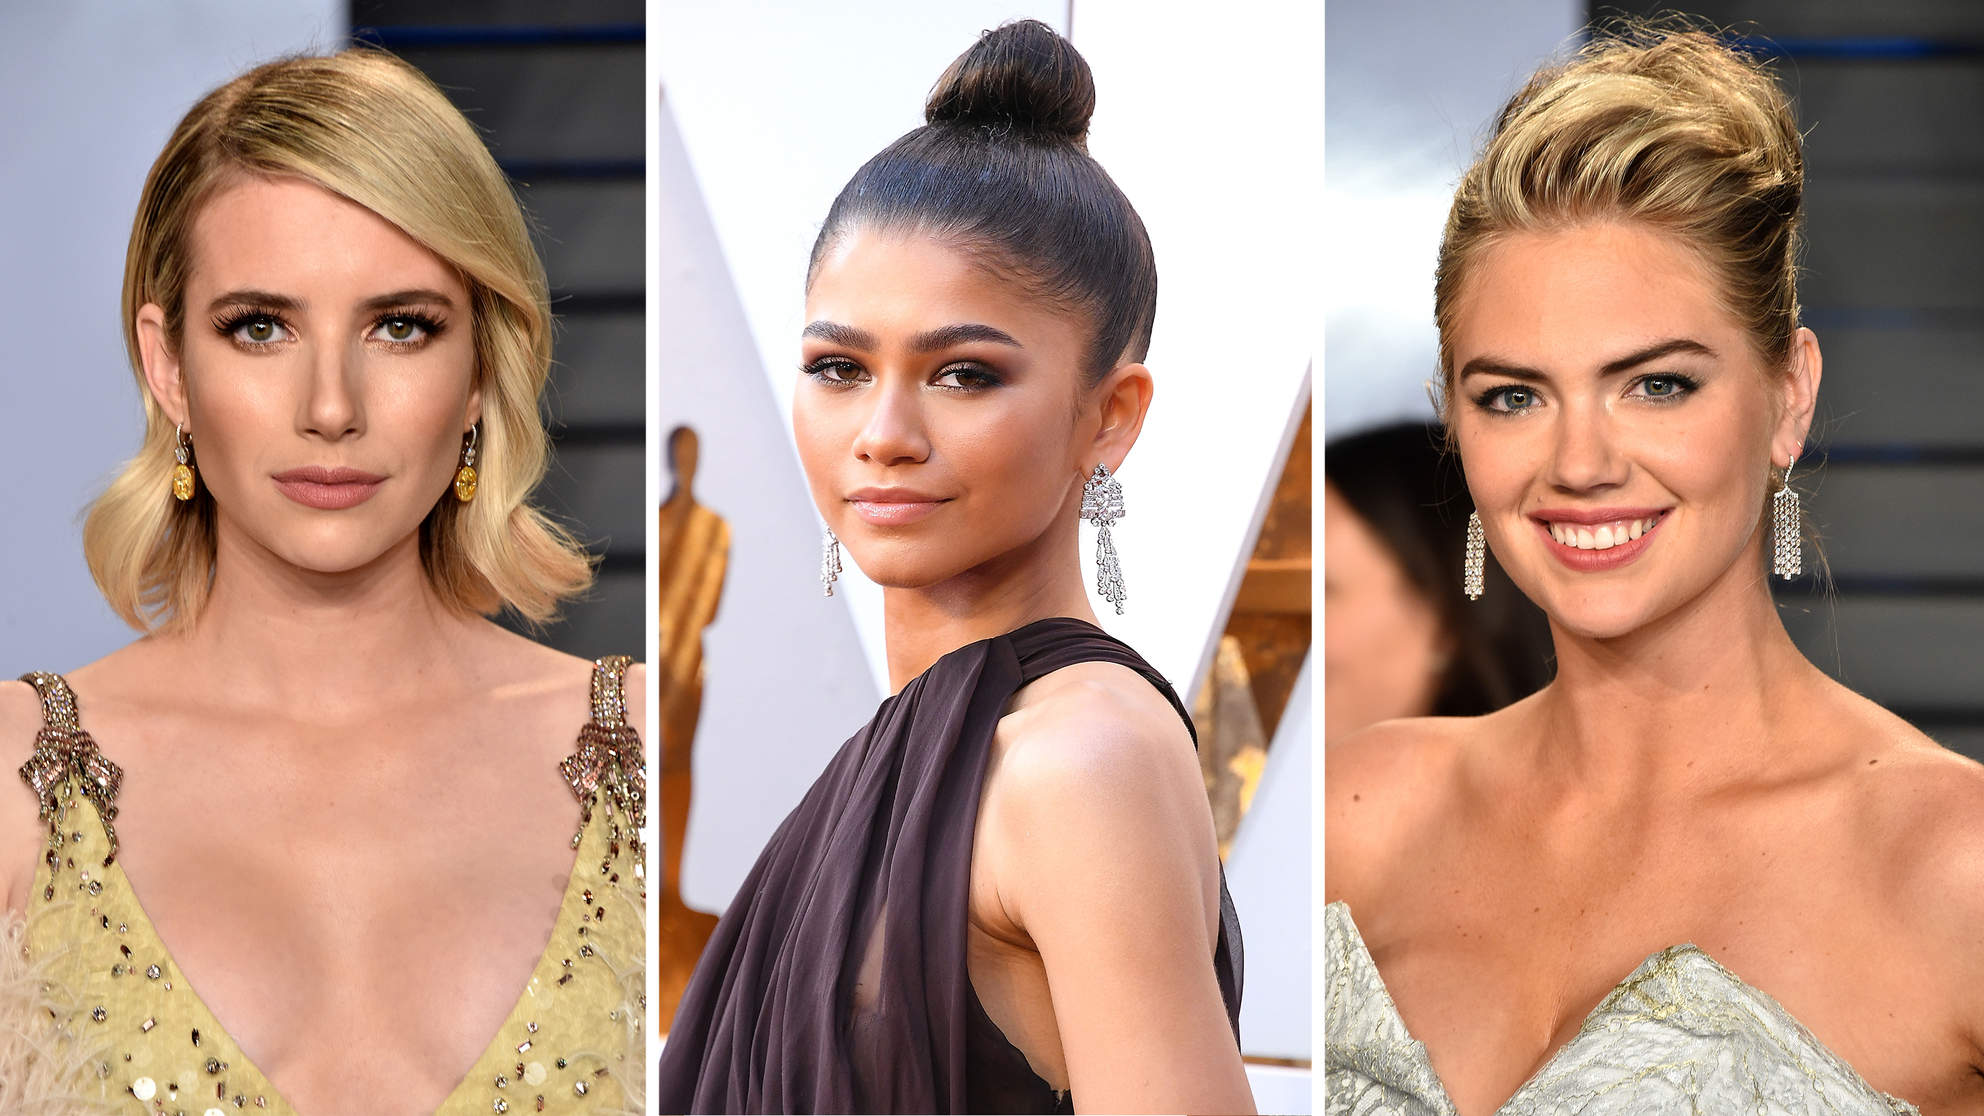 This Splurge-Worthy Product Is the Secret Behind Zendaya, Emma Roberts, and Kate Upton's Gorgeous Oscars Glow